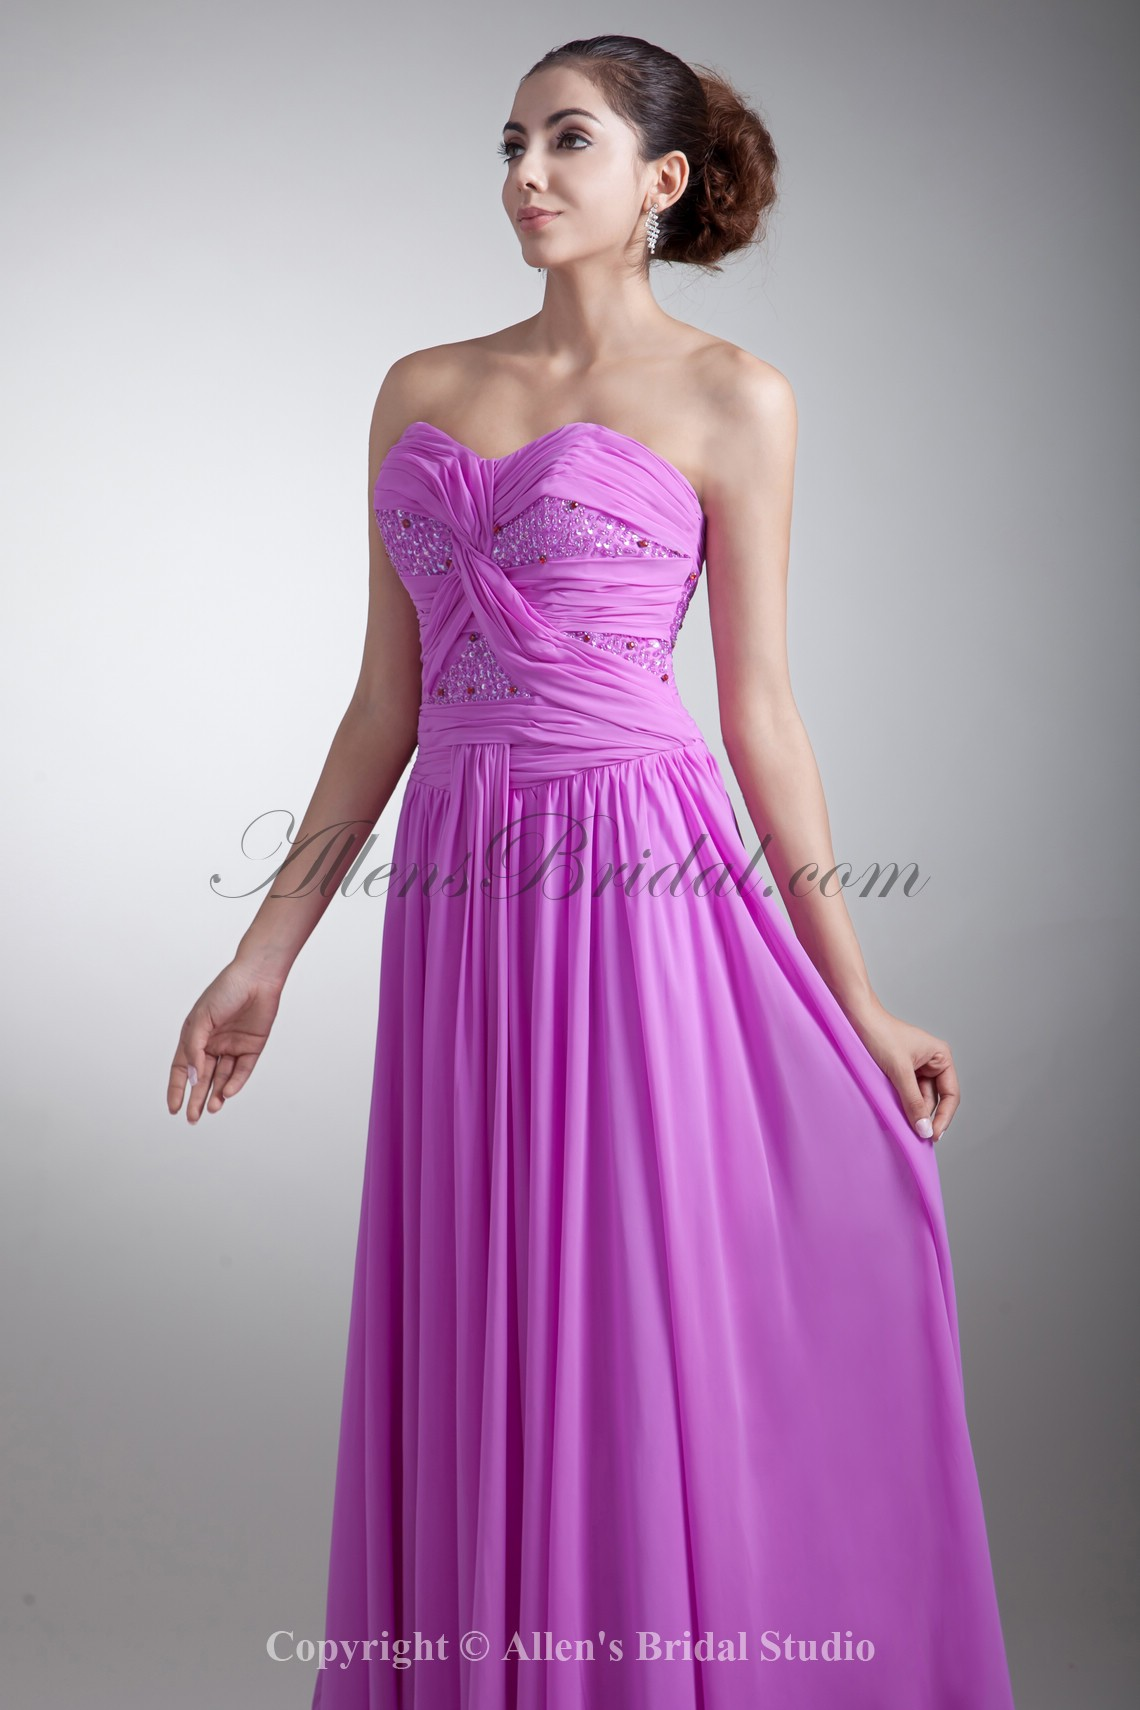 /762-6104/chiffon-sweetheart-neckline-floor-length-coloum-embroidered-prom-dress.jpg